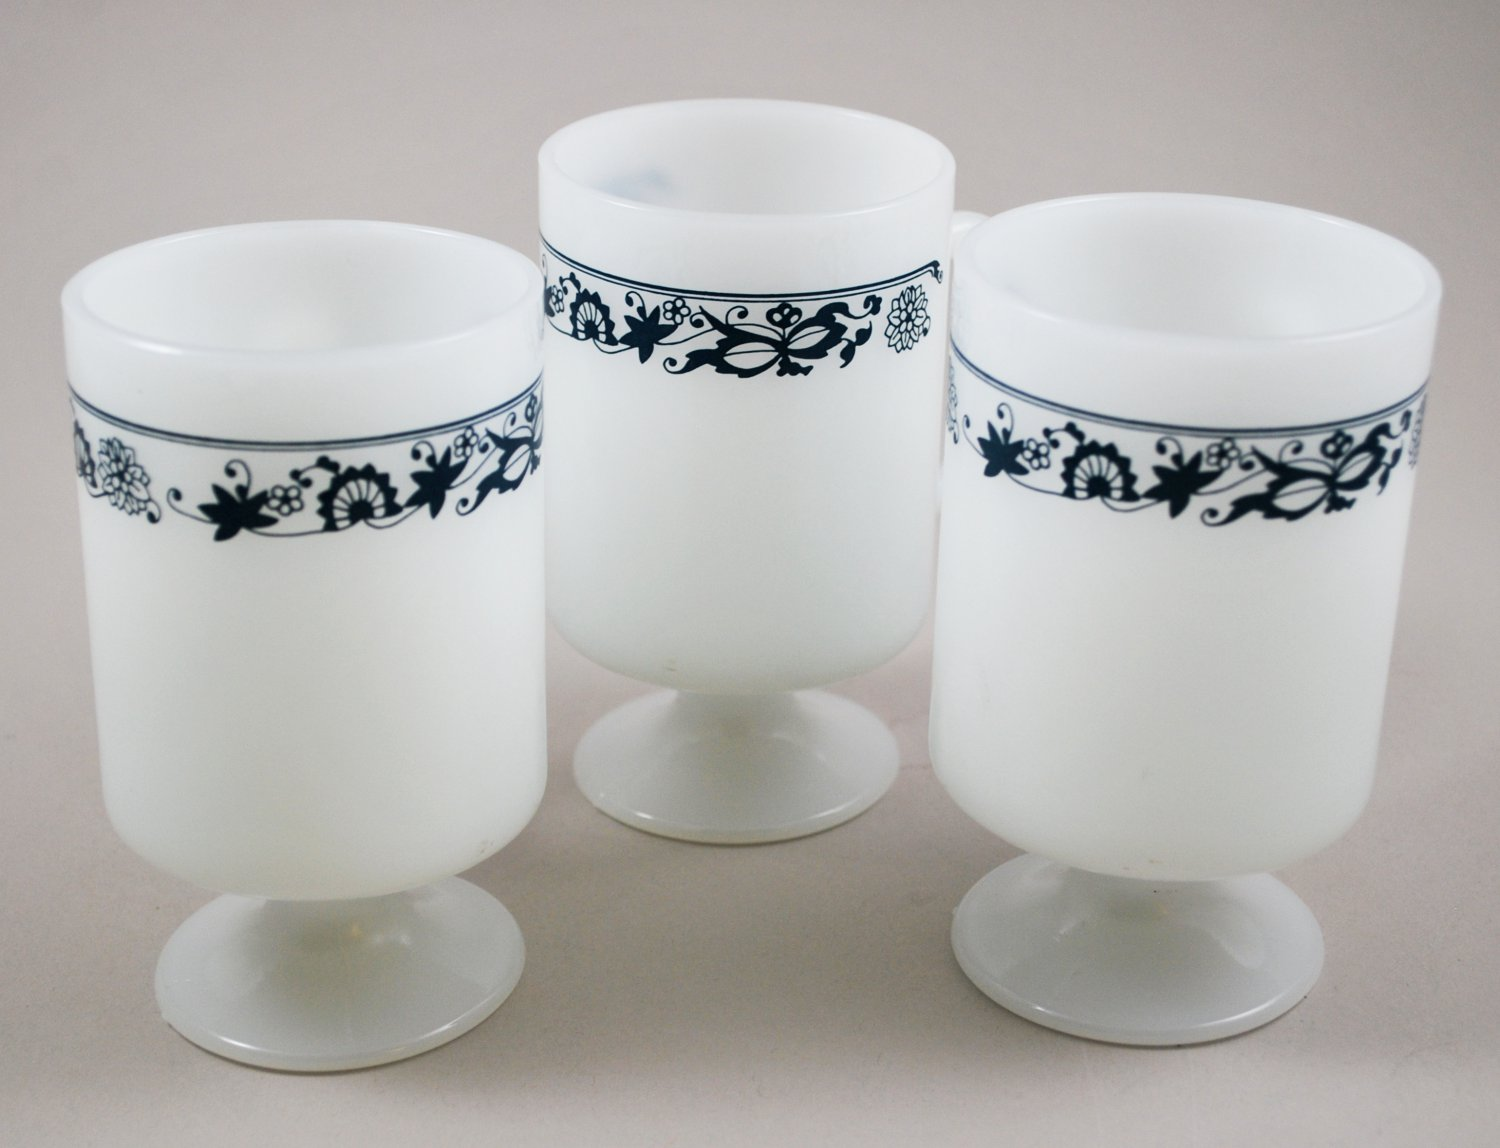 Federal Glass Whiteware Old Town Blue Onion Corelle Pattern Set of 3 Footed Mugs